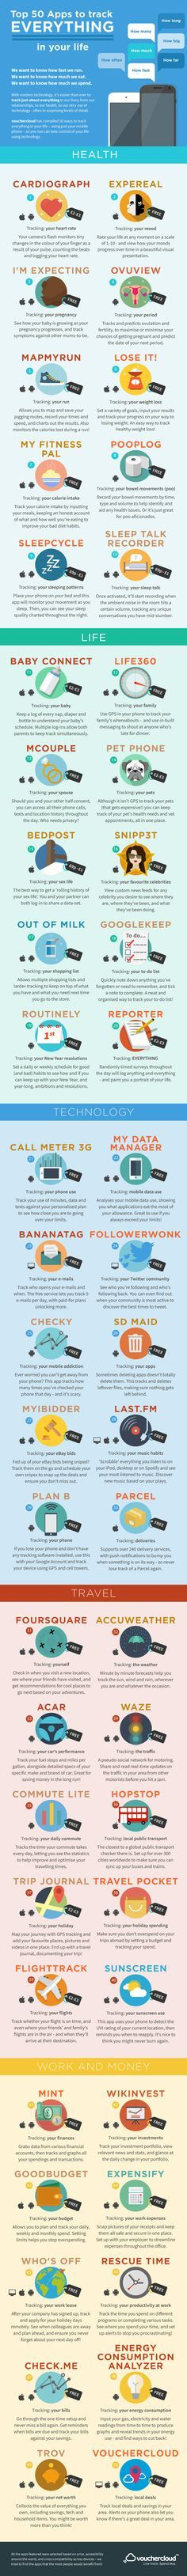 50 Mobile #Apps to Track Everything in your life - #infographic #socialmedia